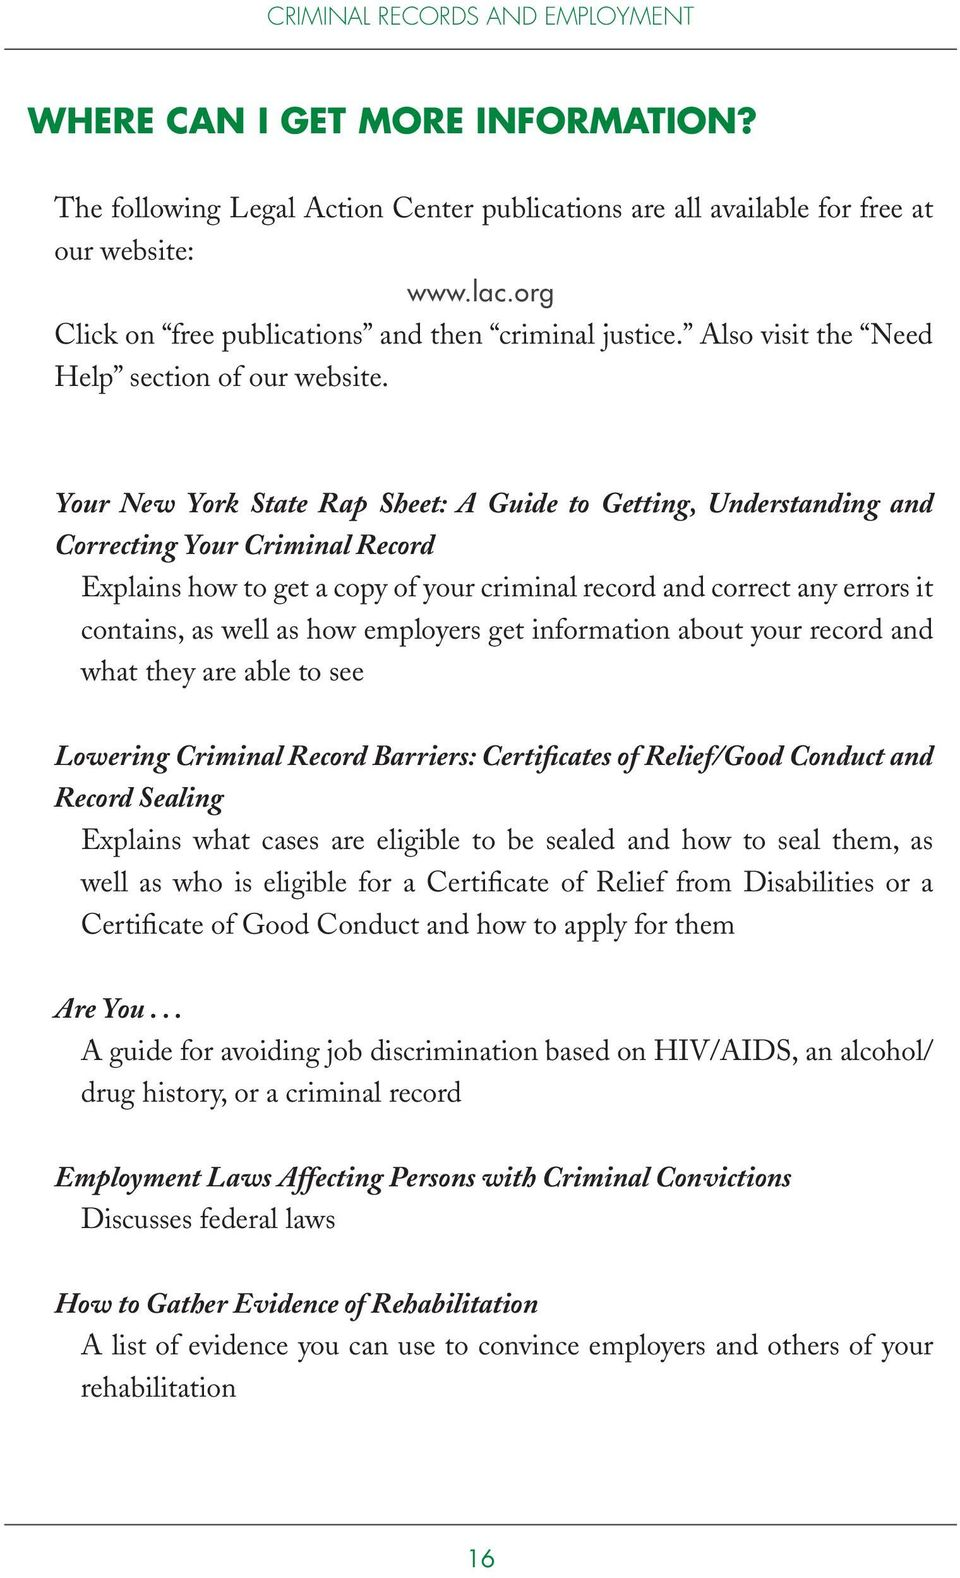 Your New York State Rap Sheet: A Guide to Getting, Understanding and Correcting Your Criminal Record Explains how to get a copy of your criminal record and correct any errors it contains, as well as